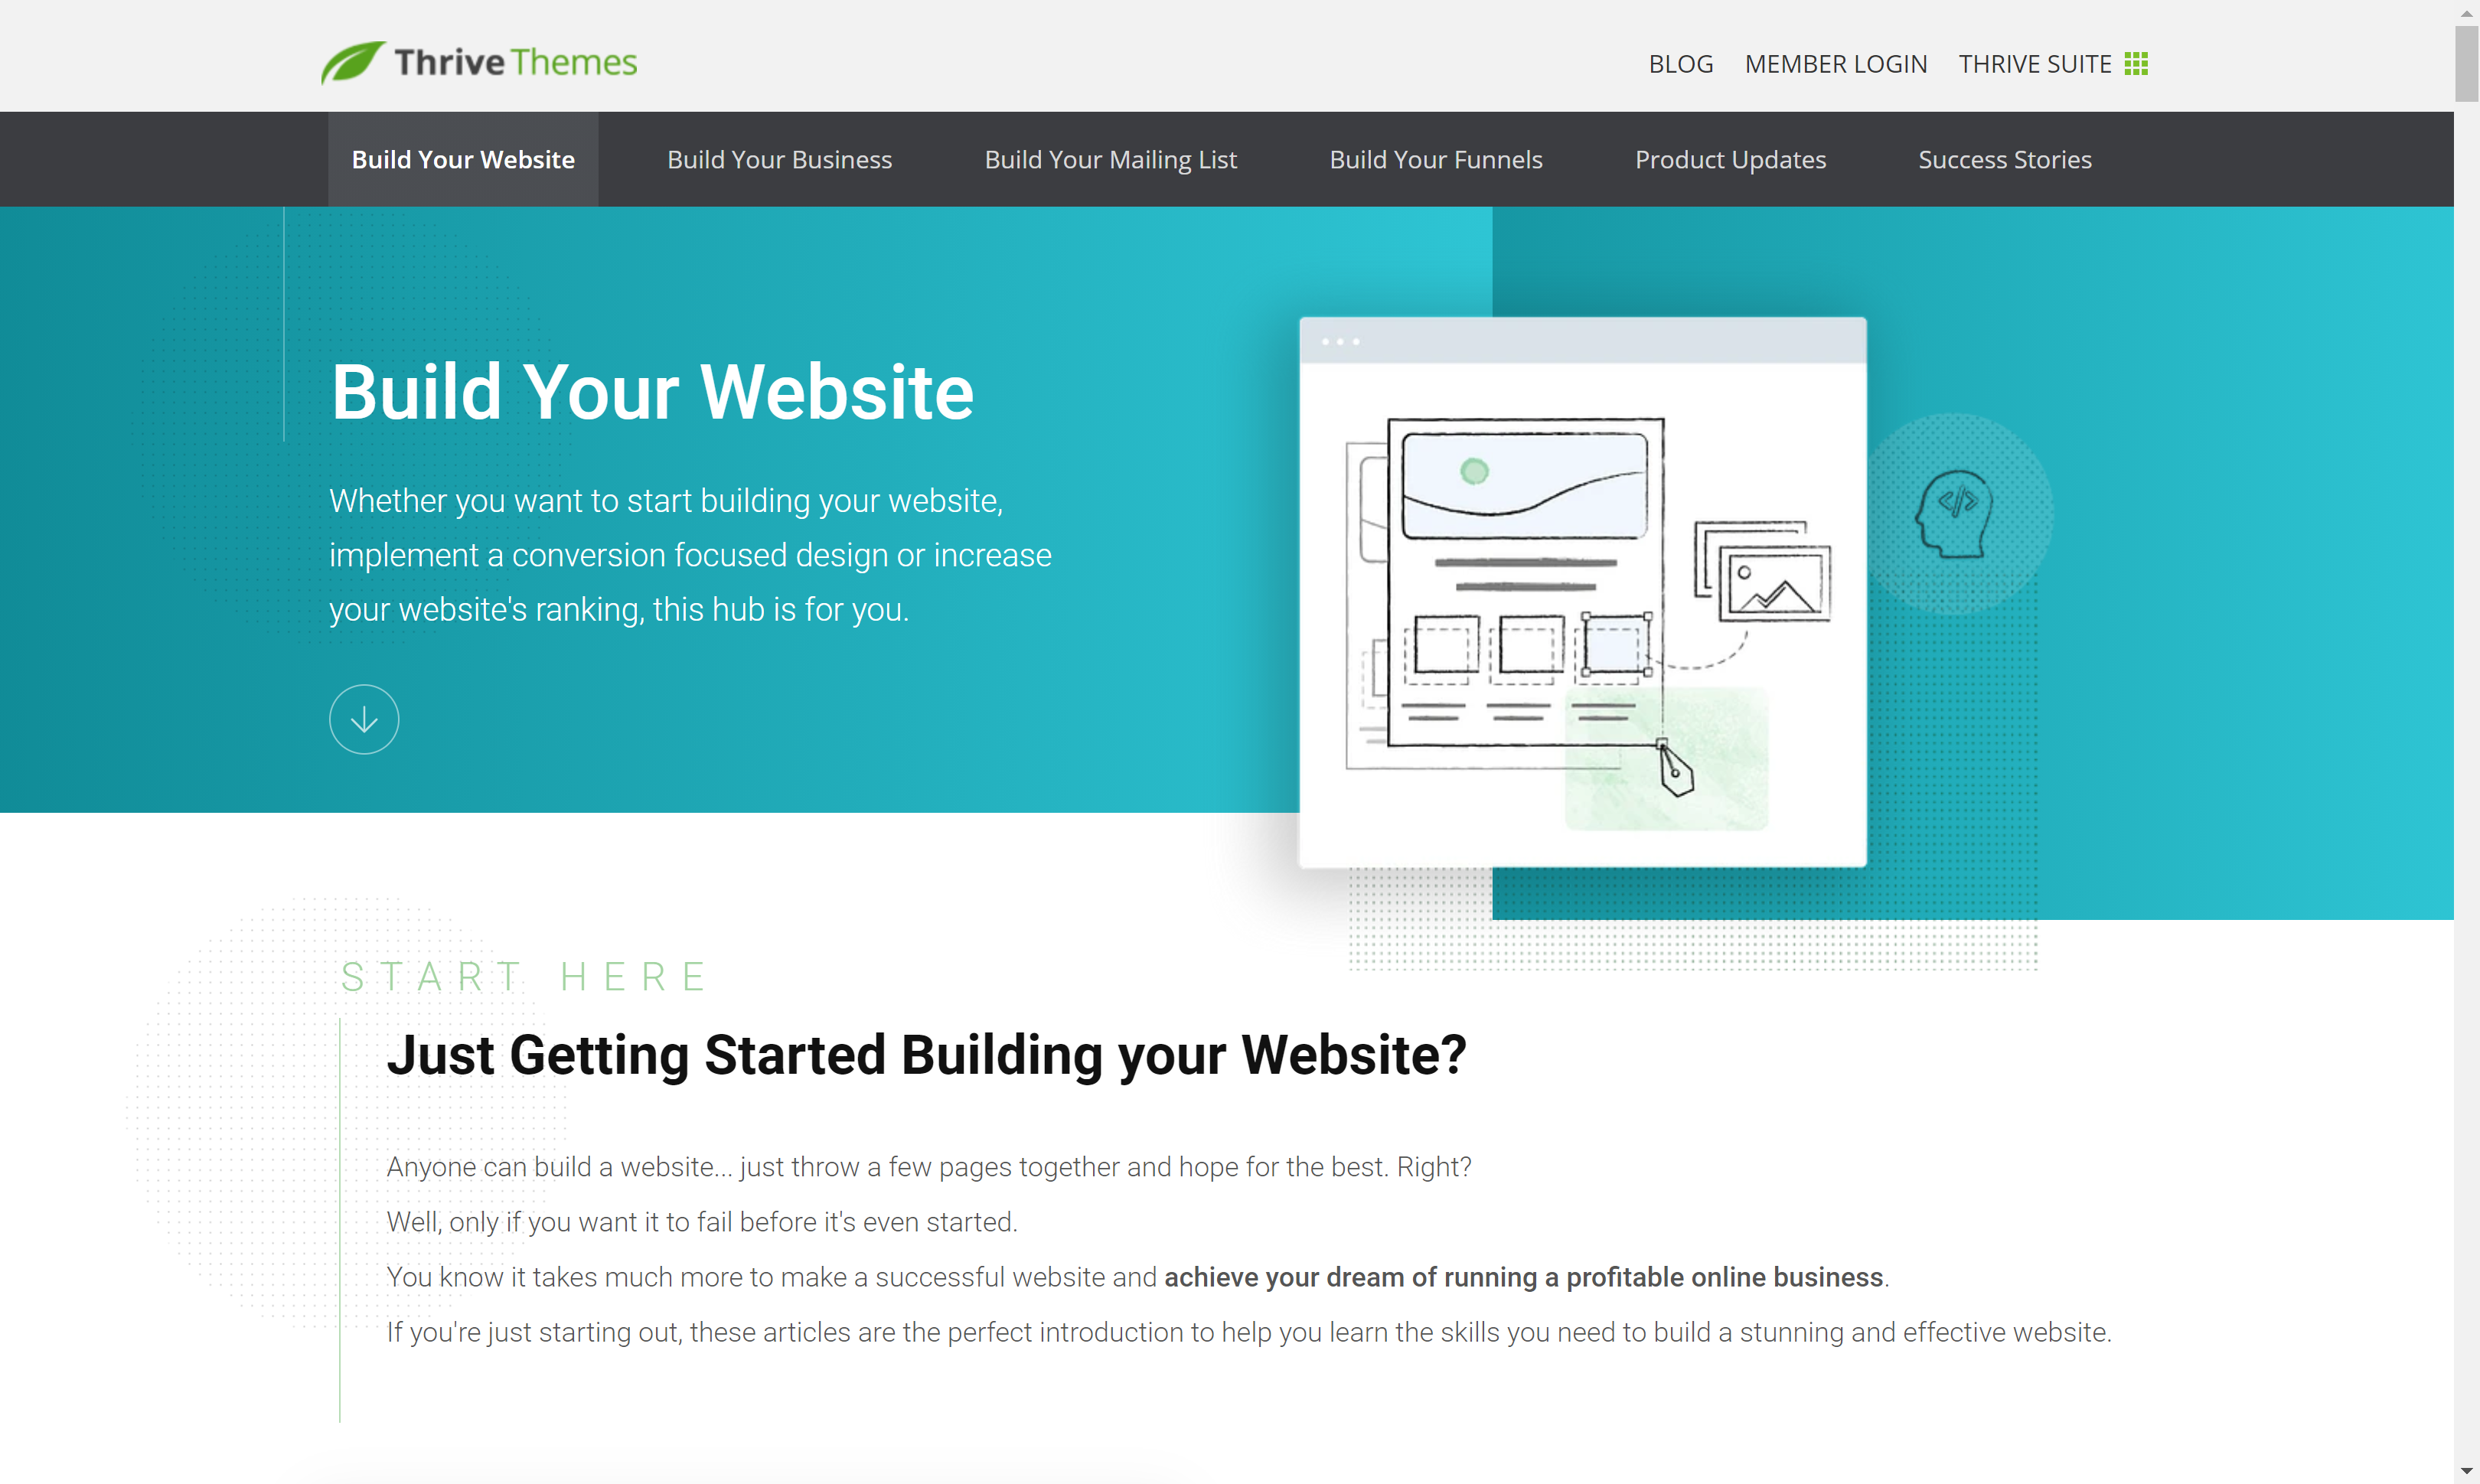 Thrive Themes Example